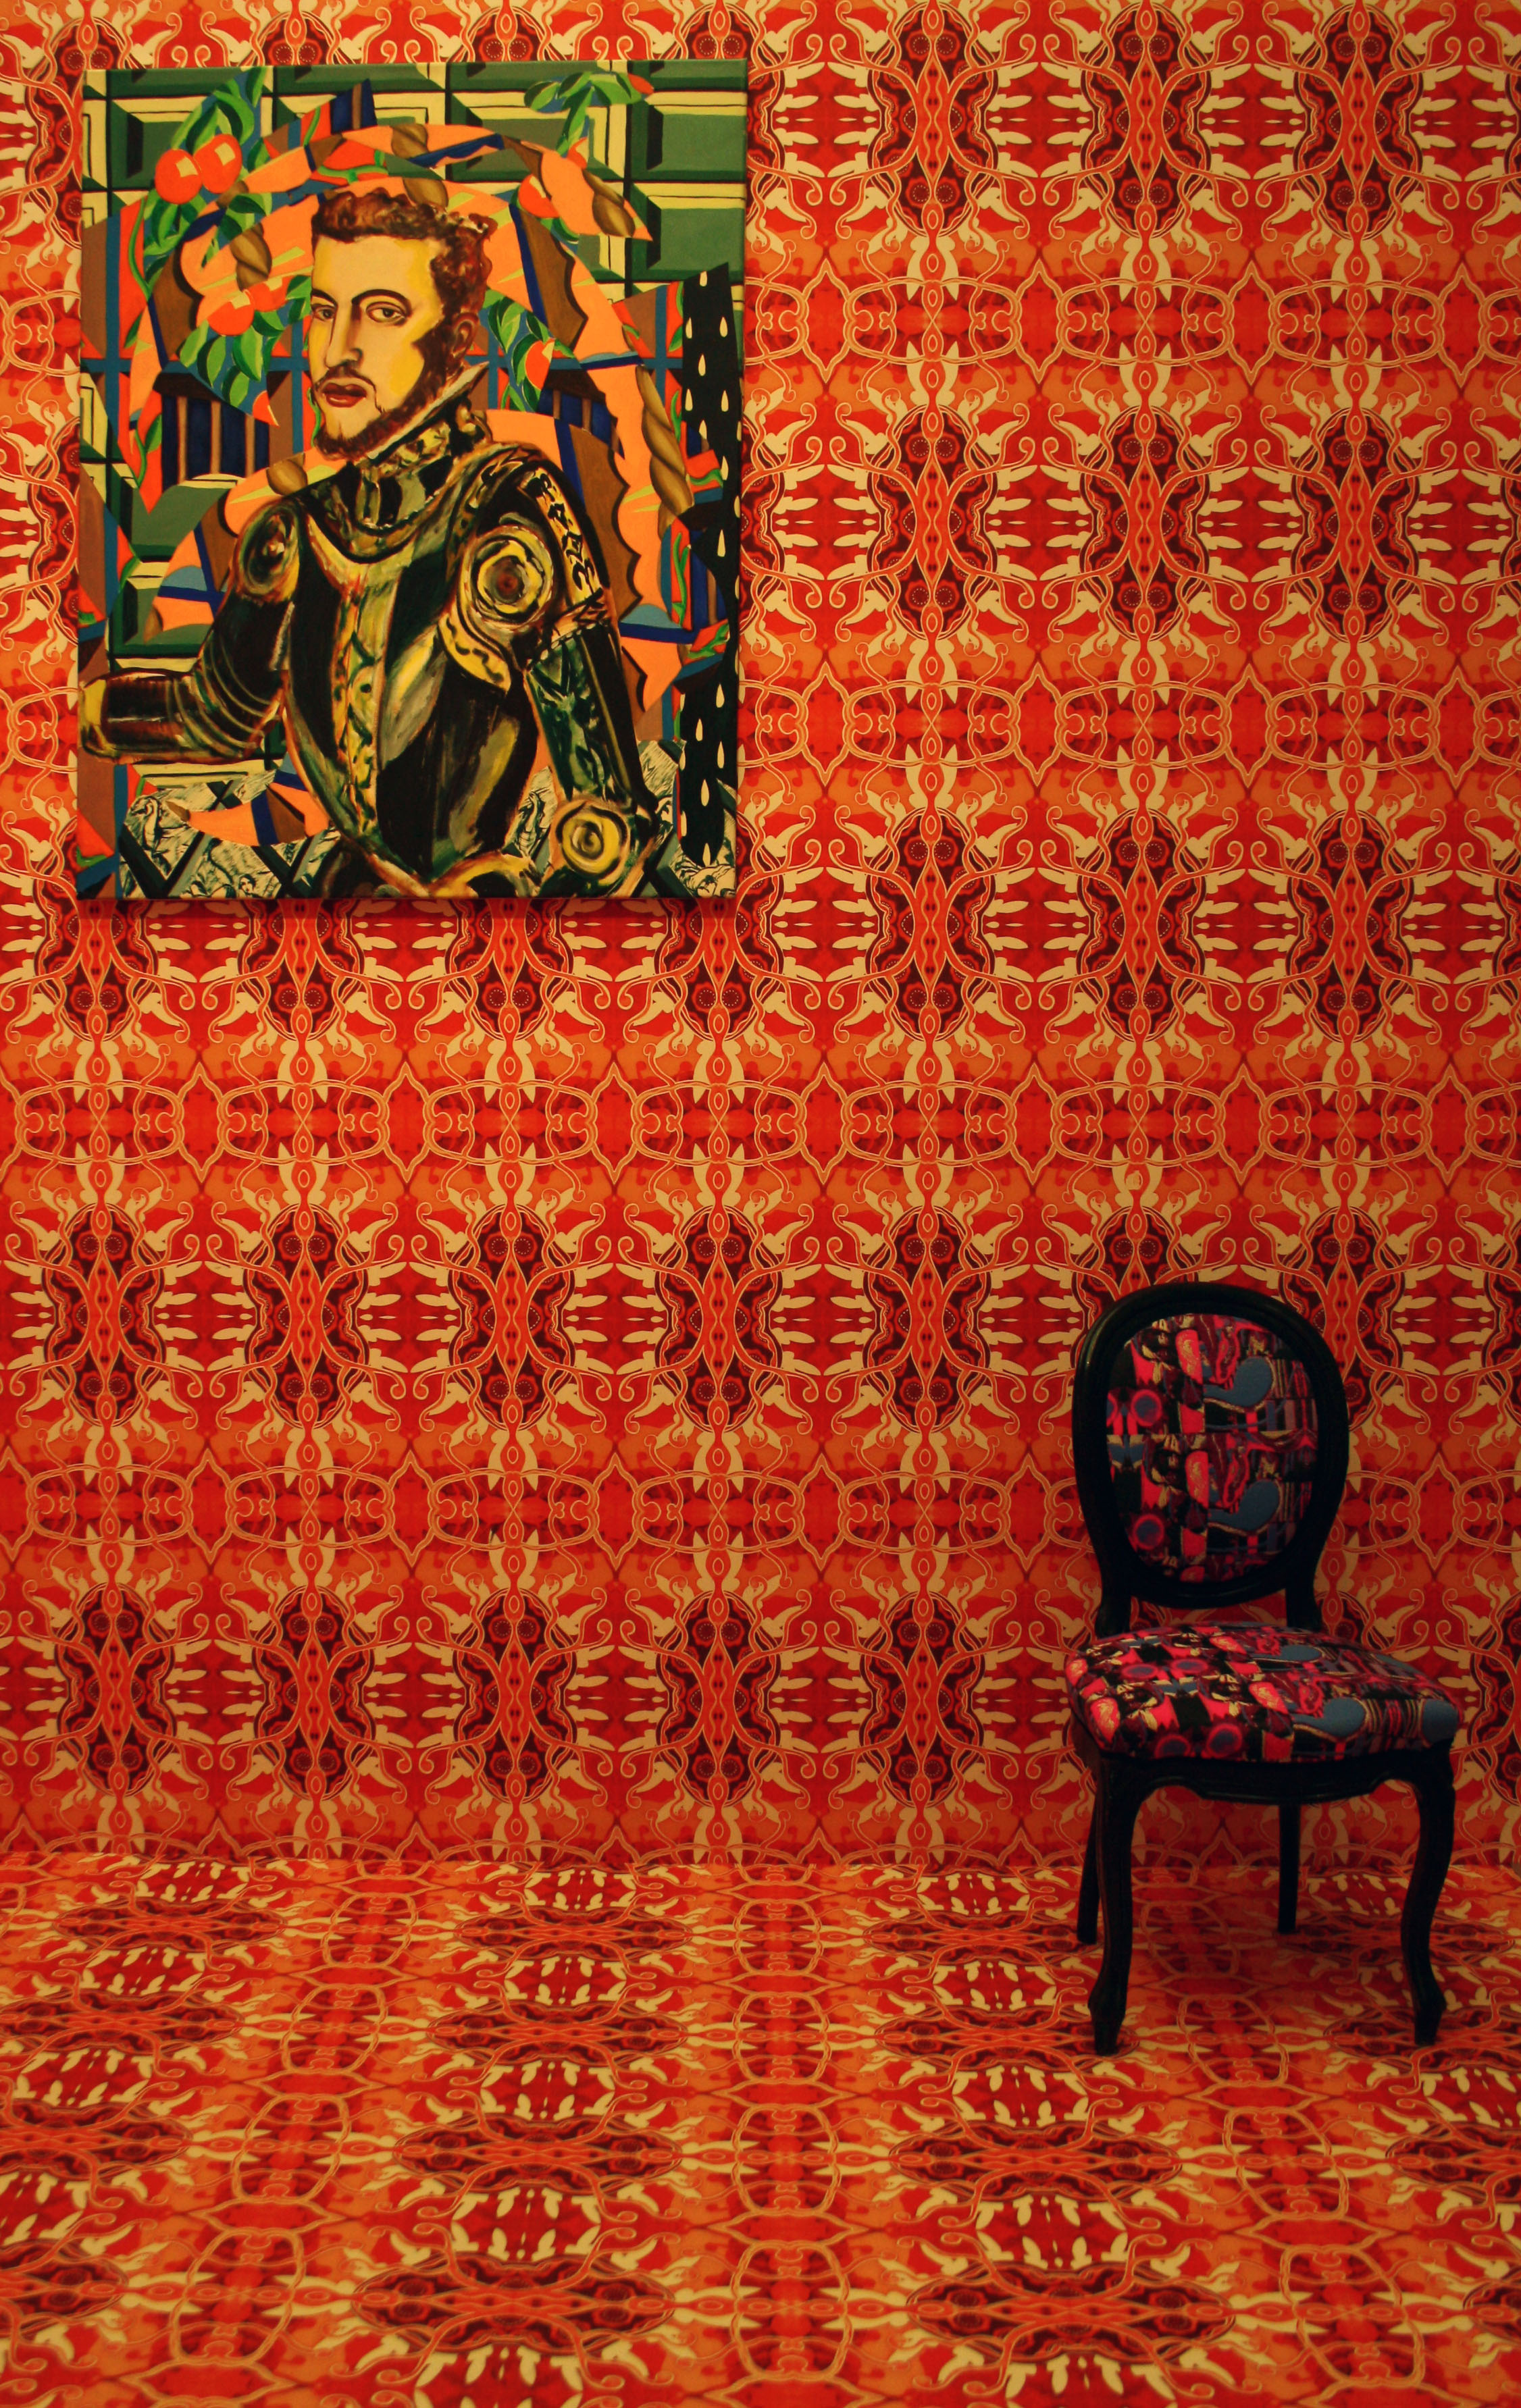 History William of Orange, 1991, olie op canvas, 120 x 100 cm, Collectie Link Art Company